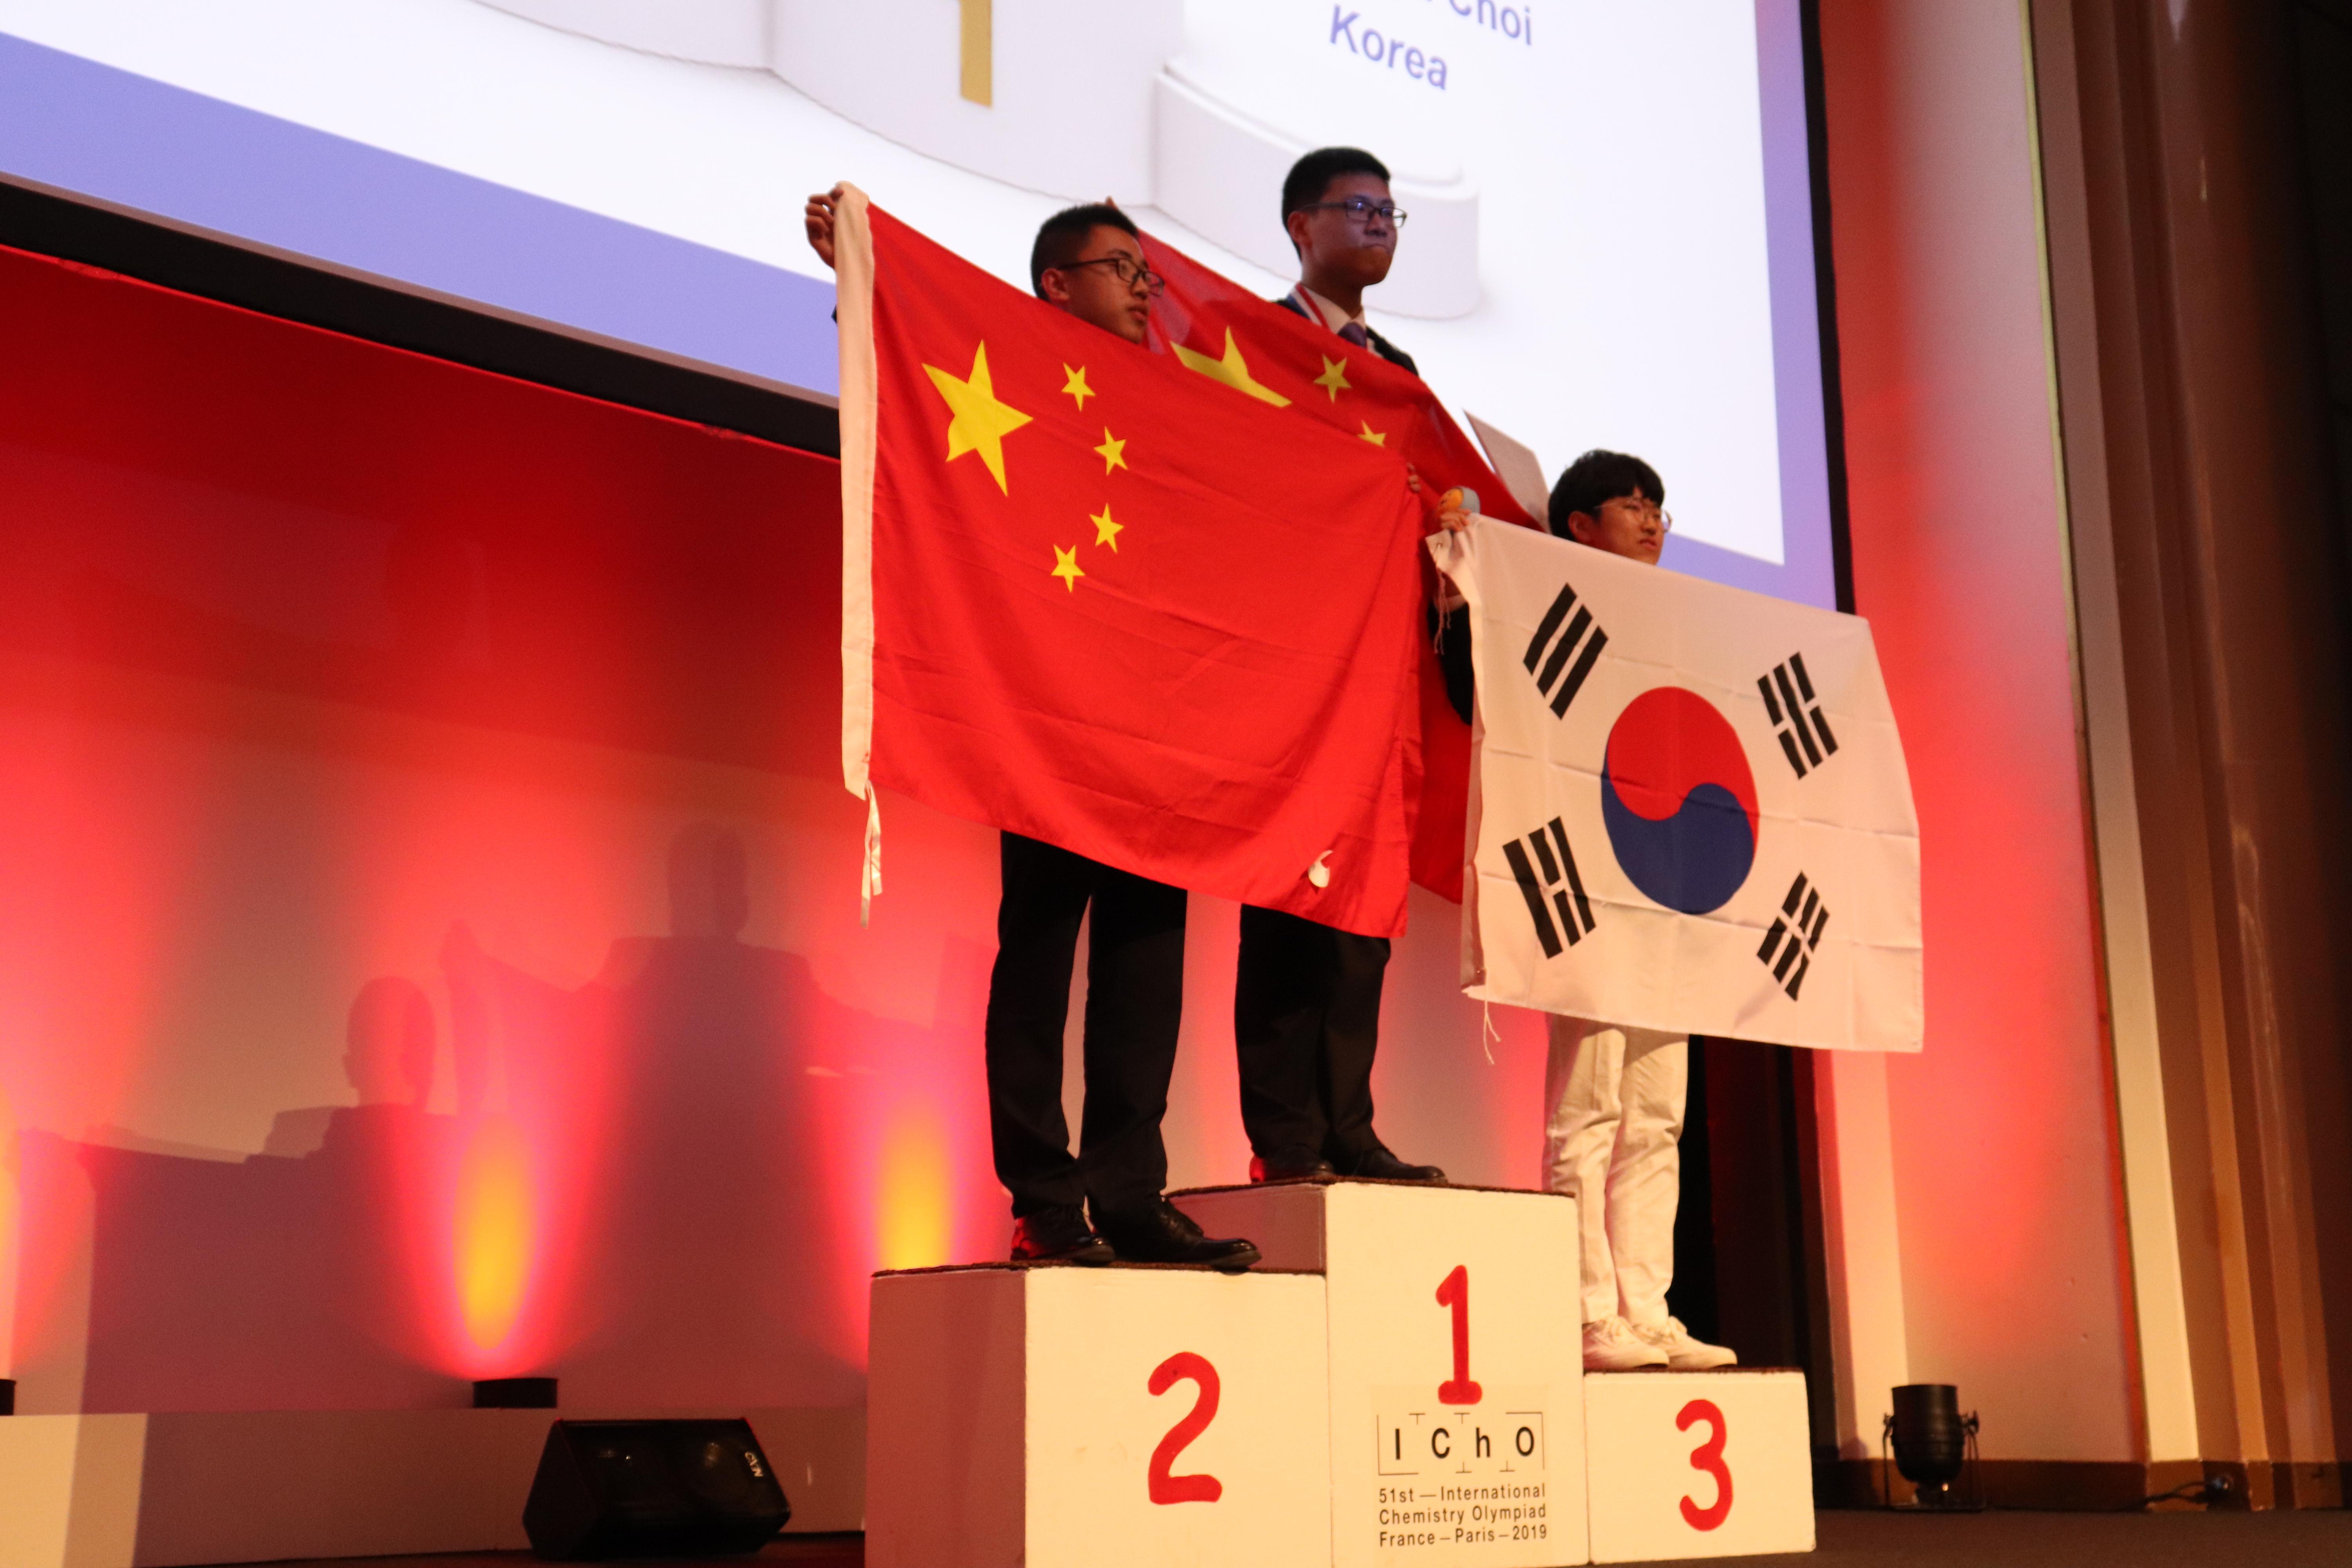 IChO 2019 Day 9: Closing Ceremony and Results - IChO 2019